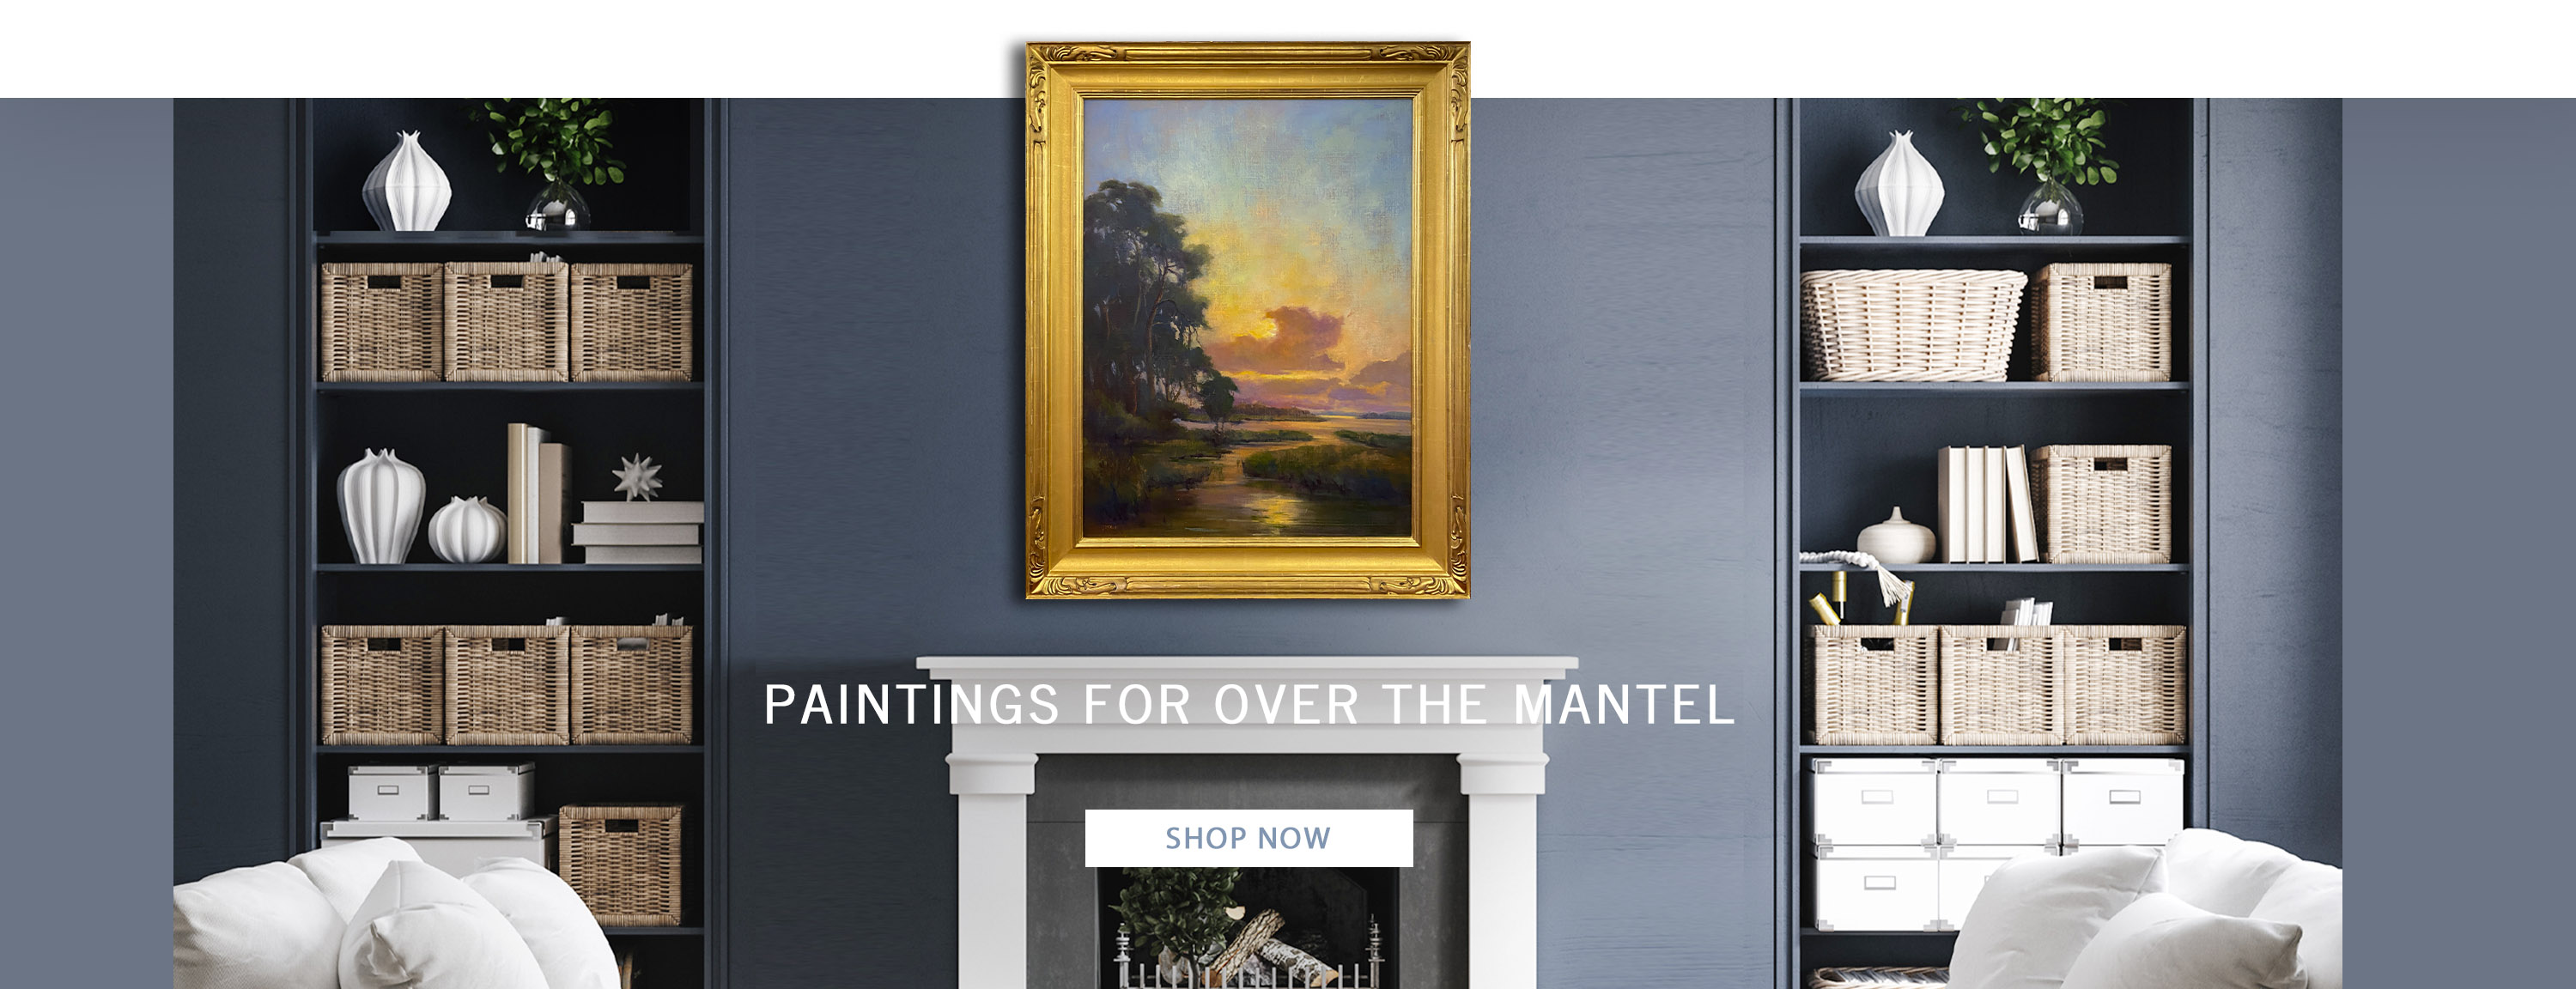 Paintings for over the mantel